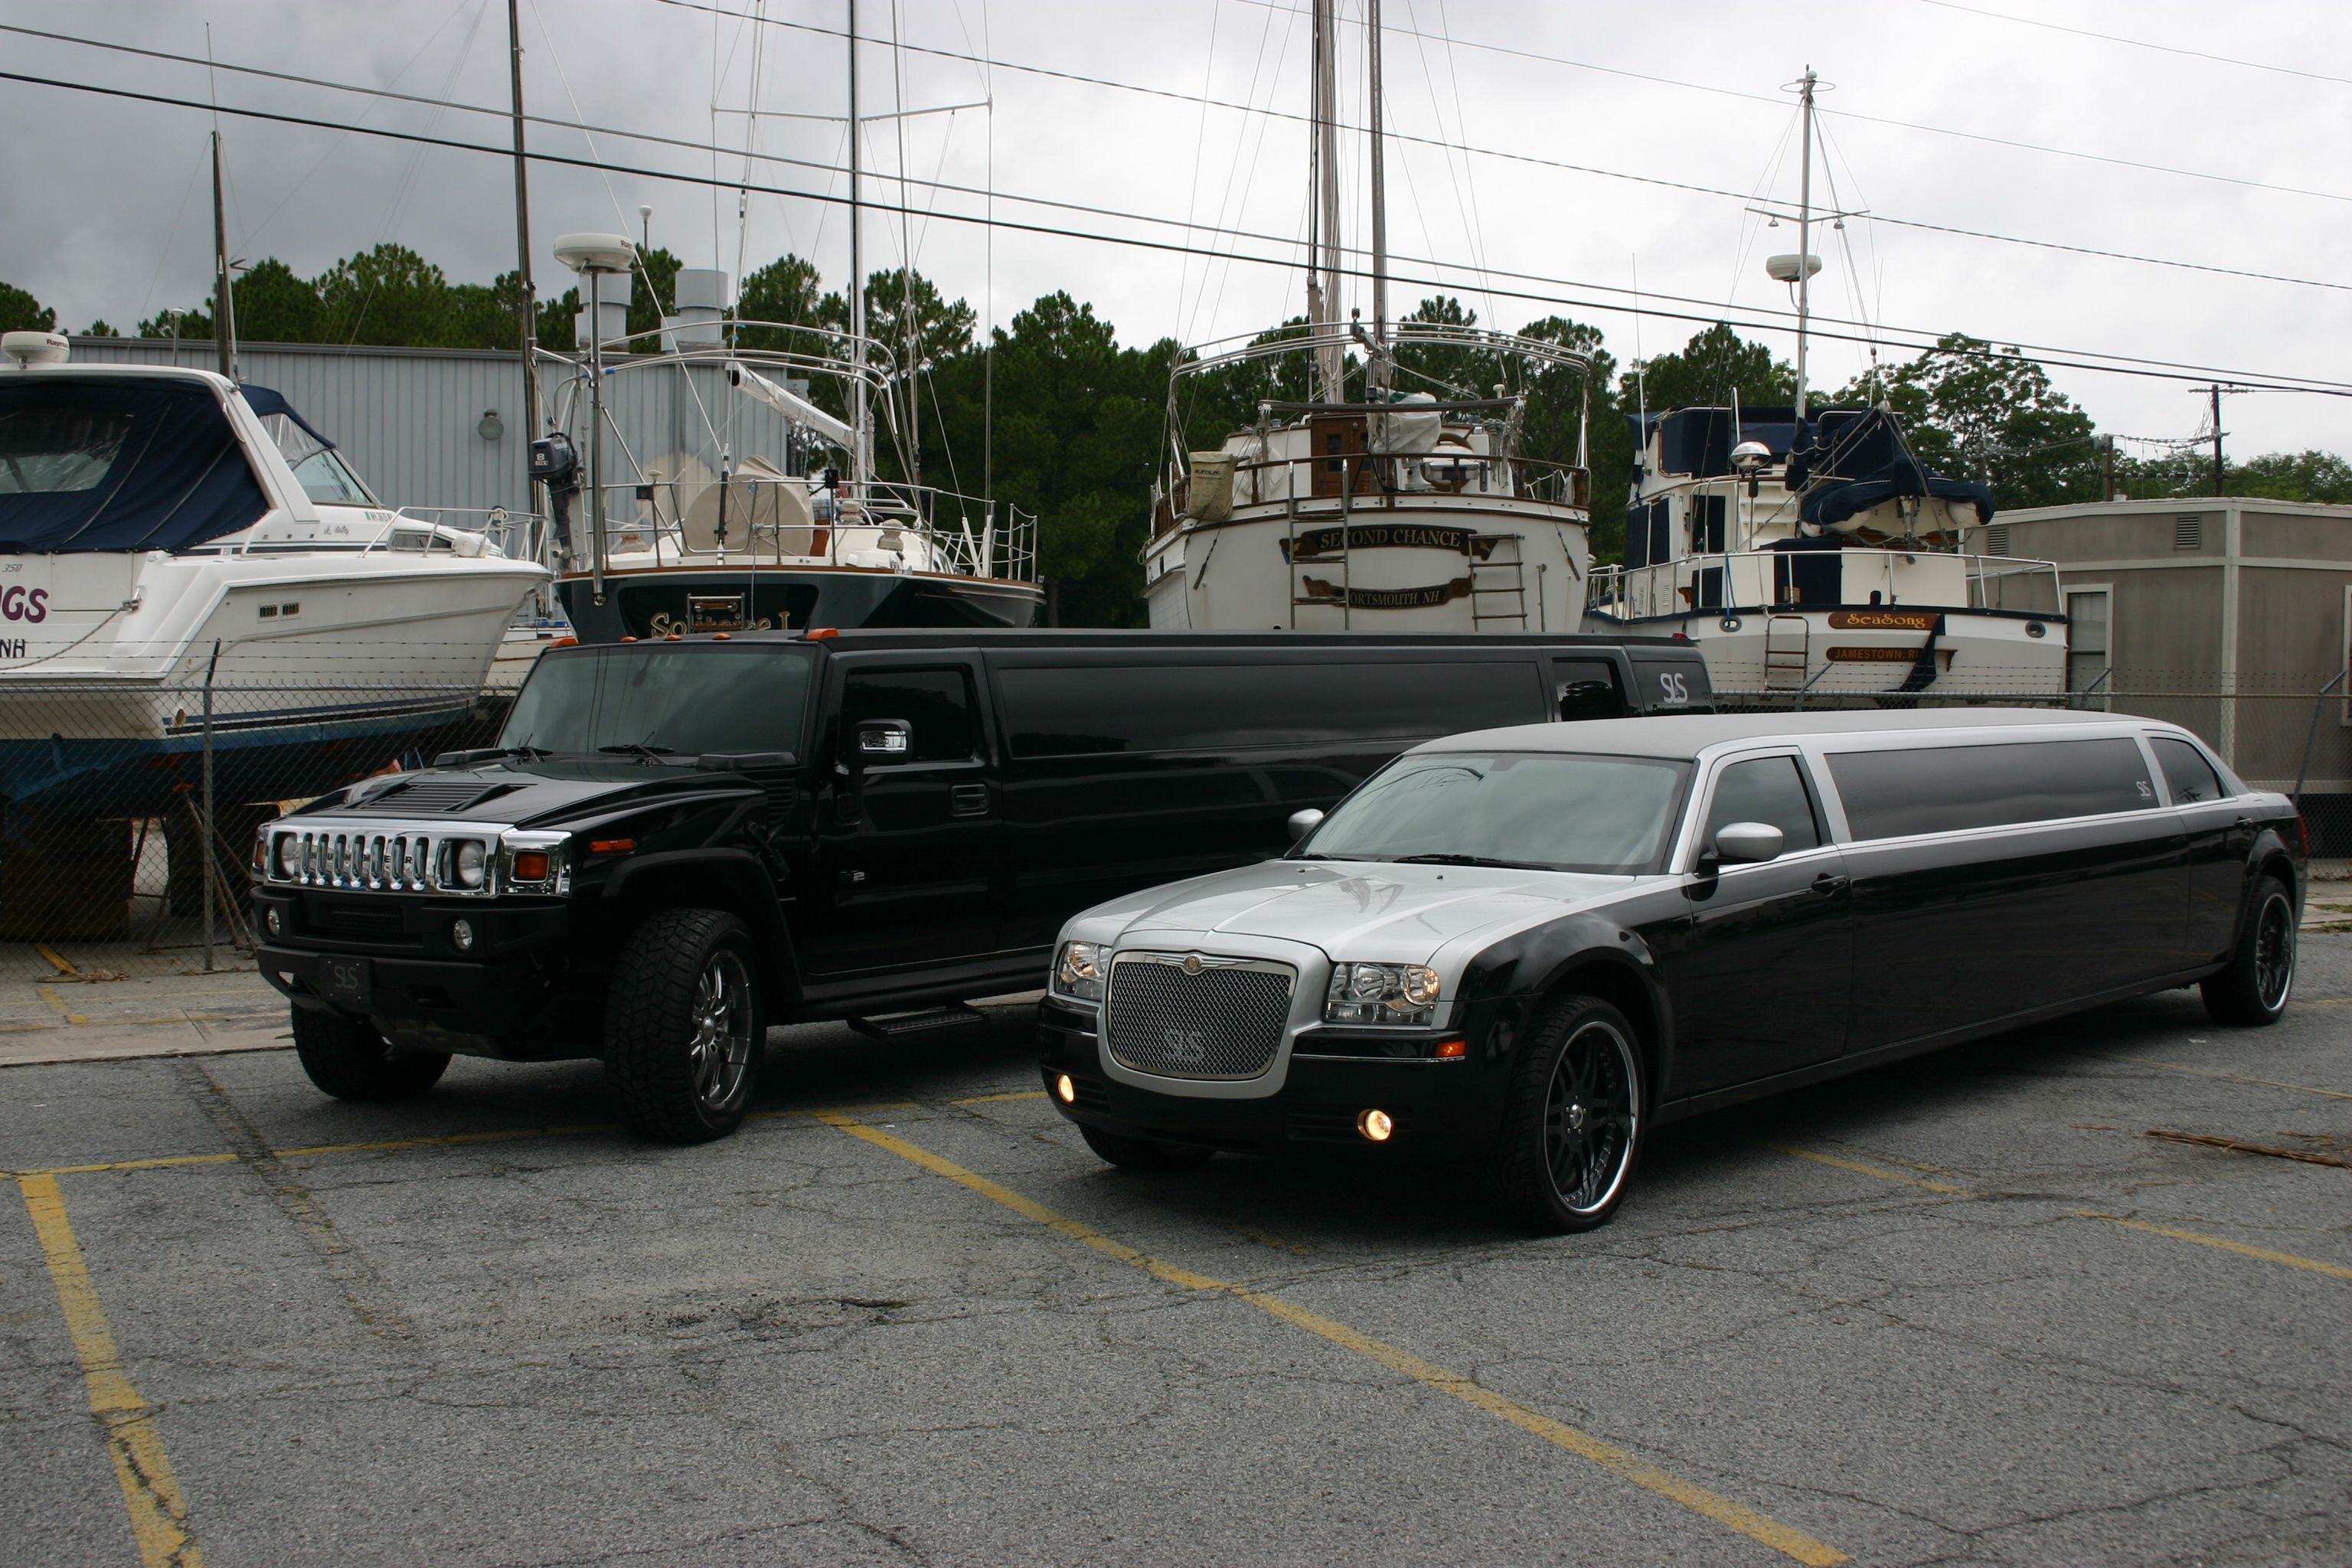 Hummer H2 Limo I just found such a fun limousine Look into a